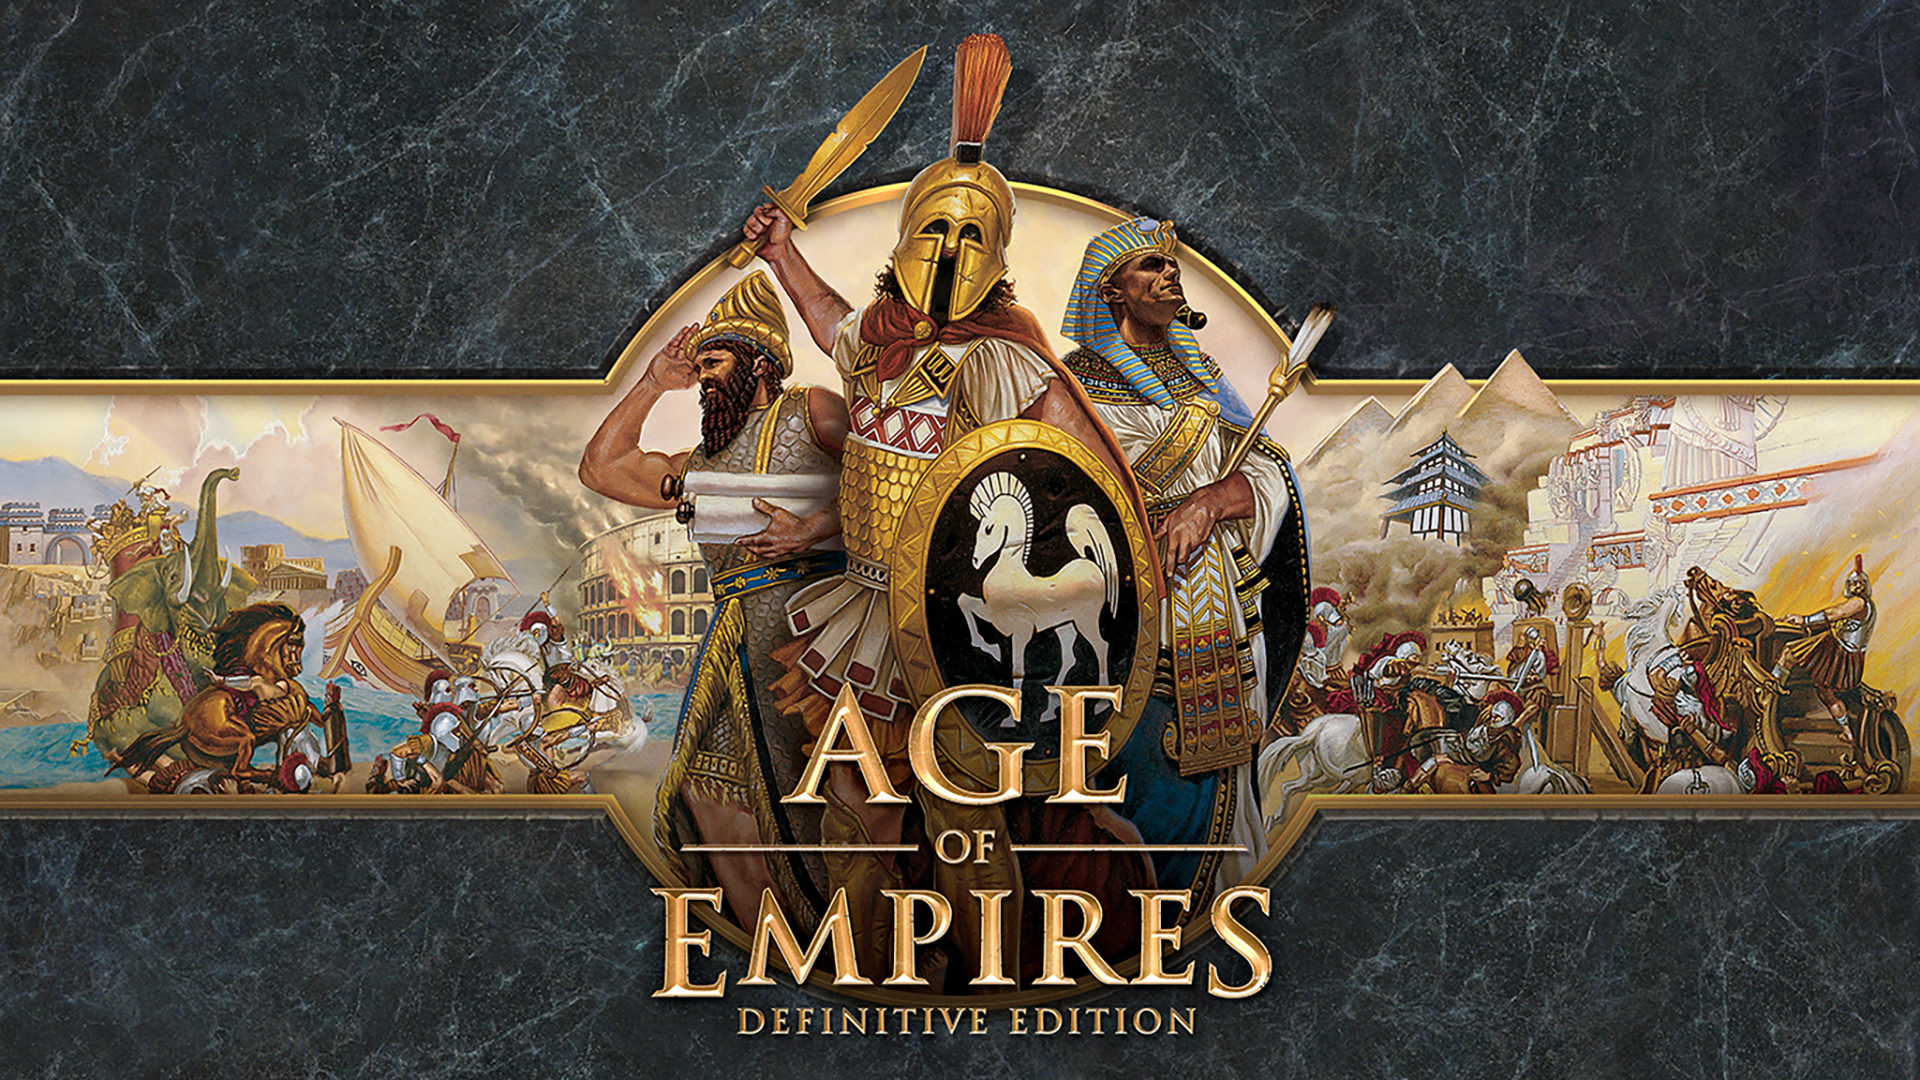 Definitive Edition (PC) — Age of Empires